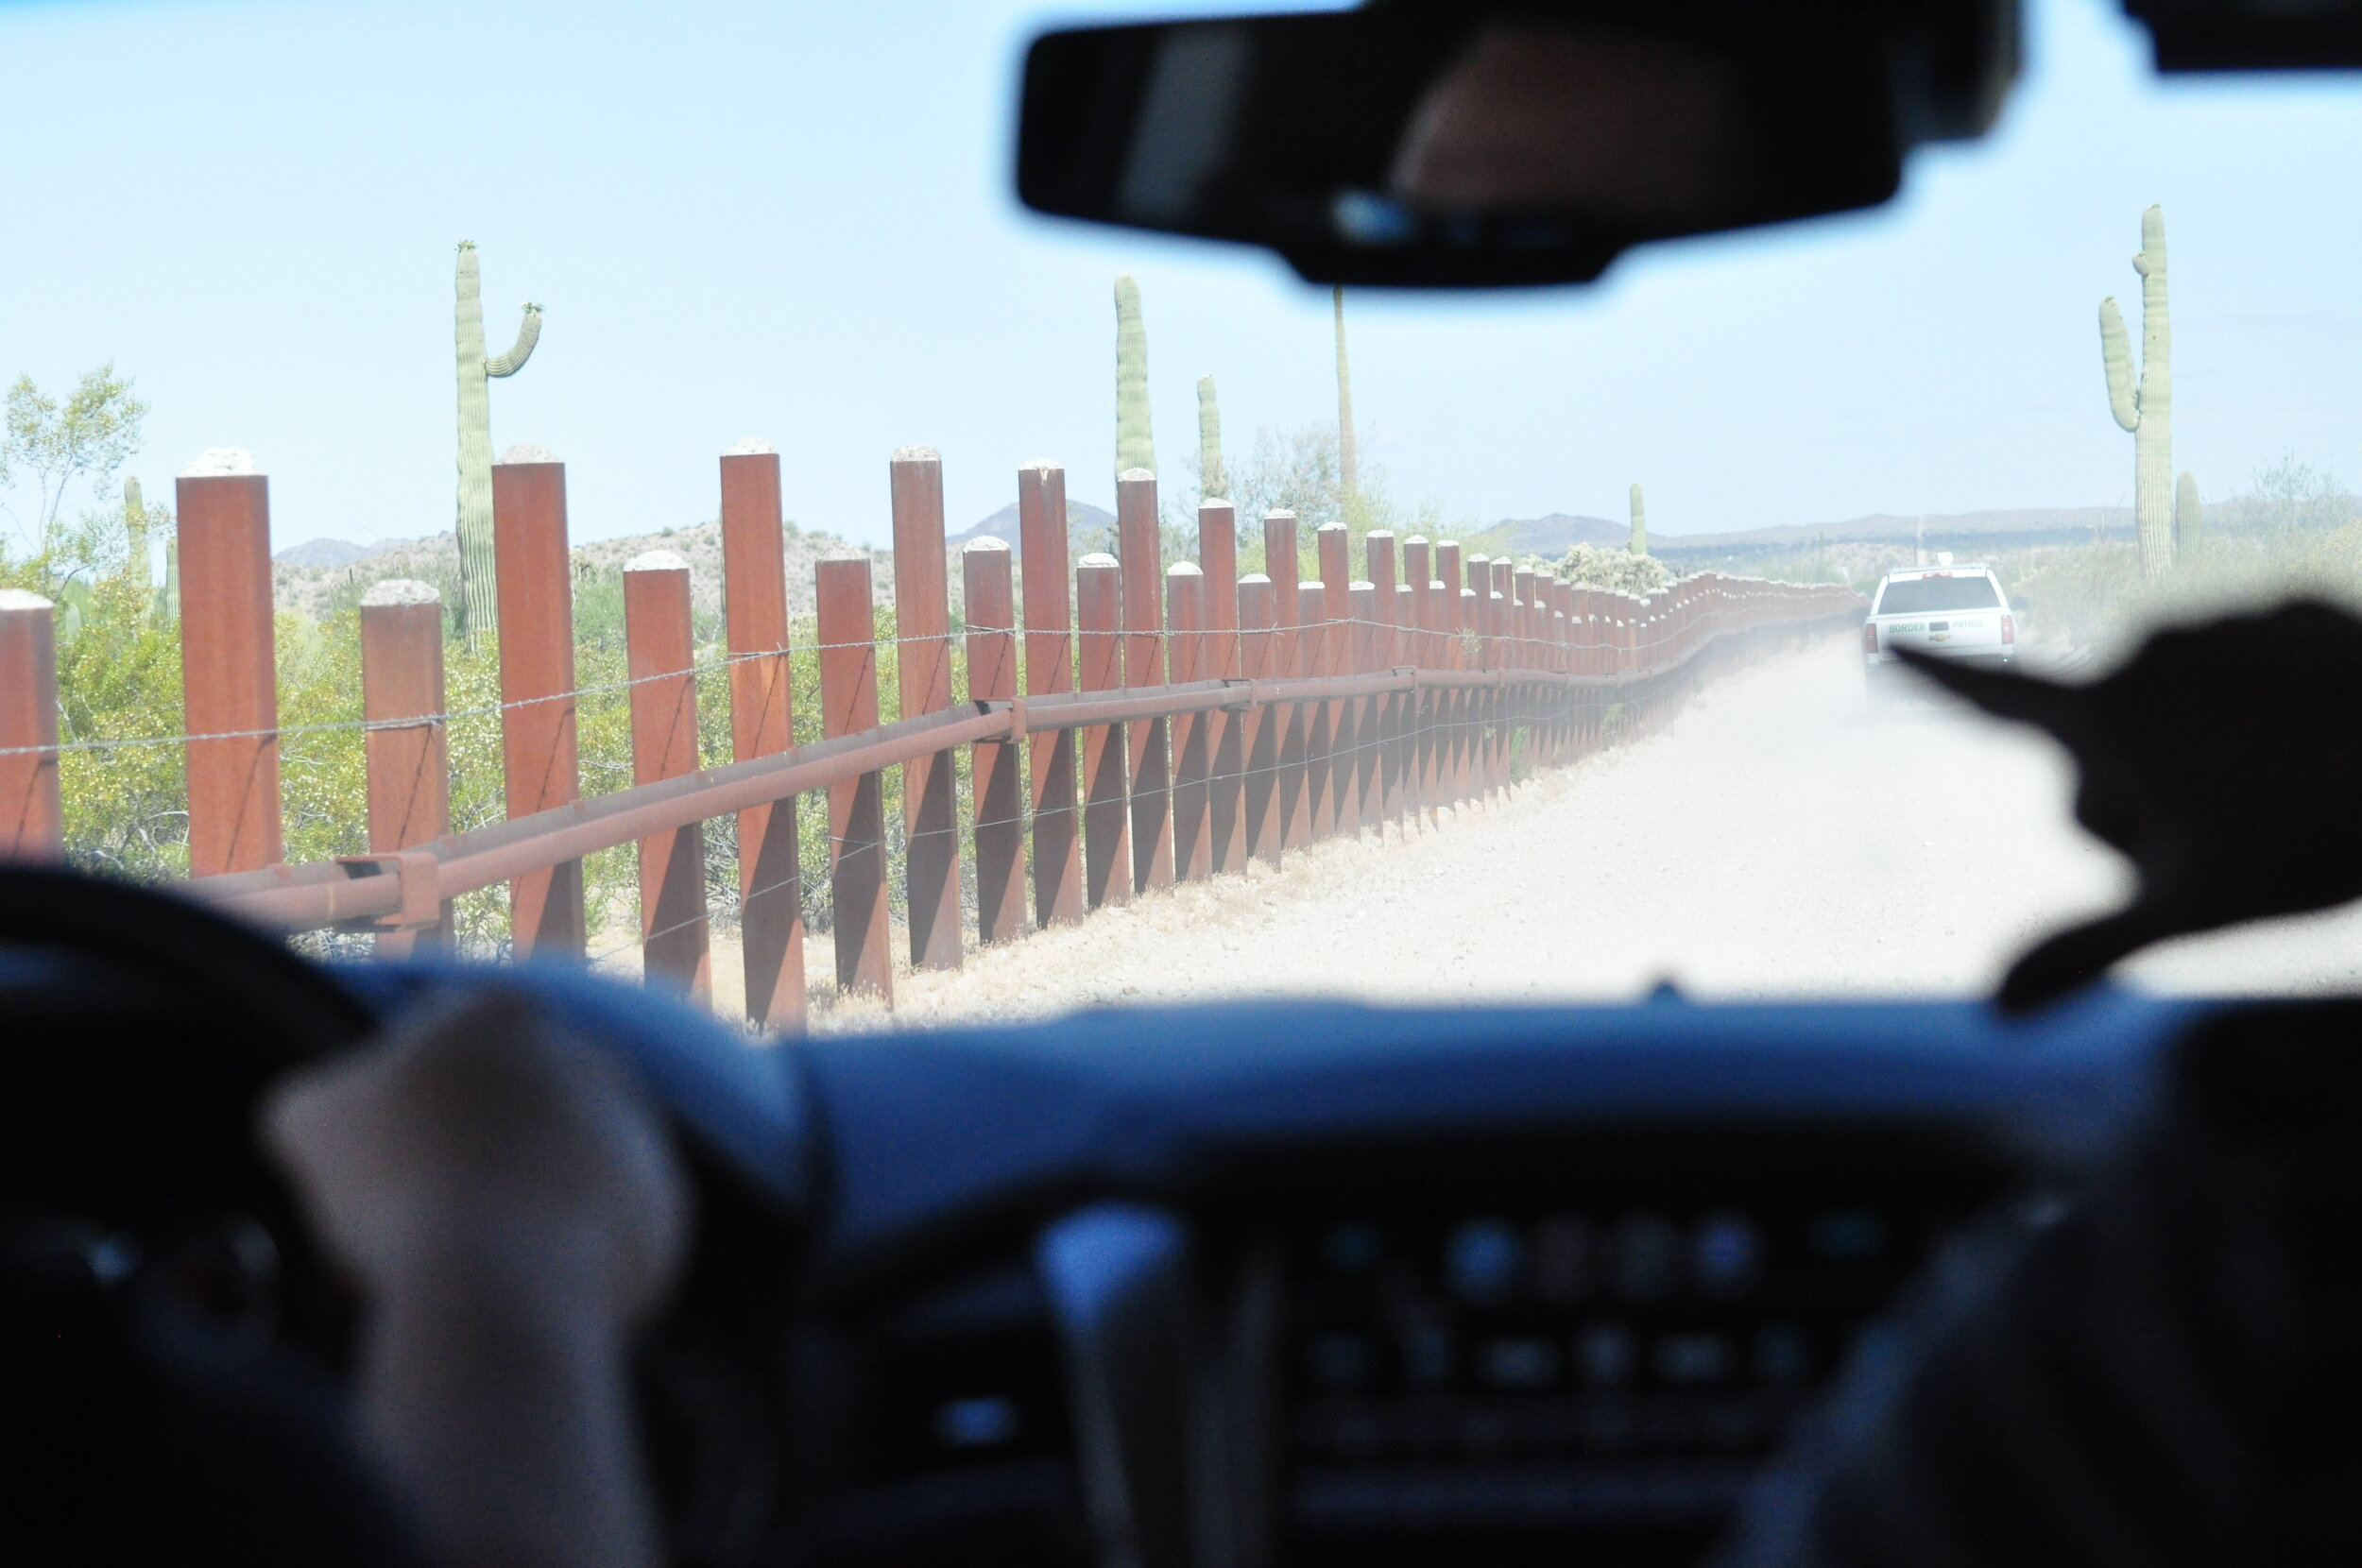 An example of the old vehicle barrier before the construction of Trump's wall in the Tucson sector